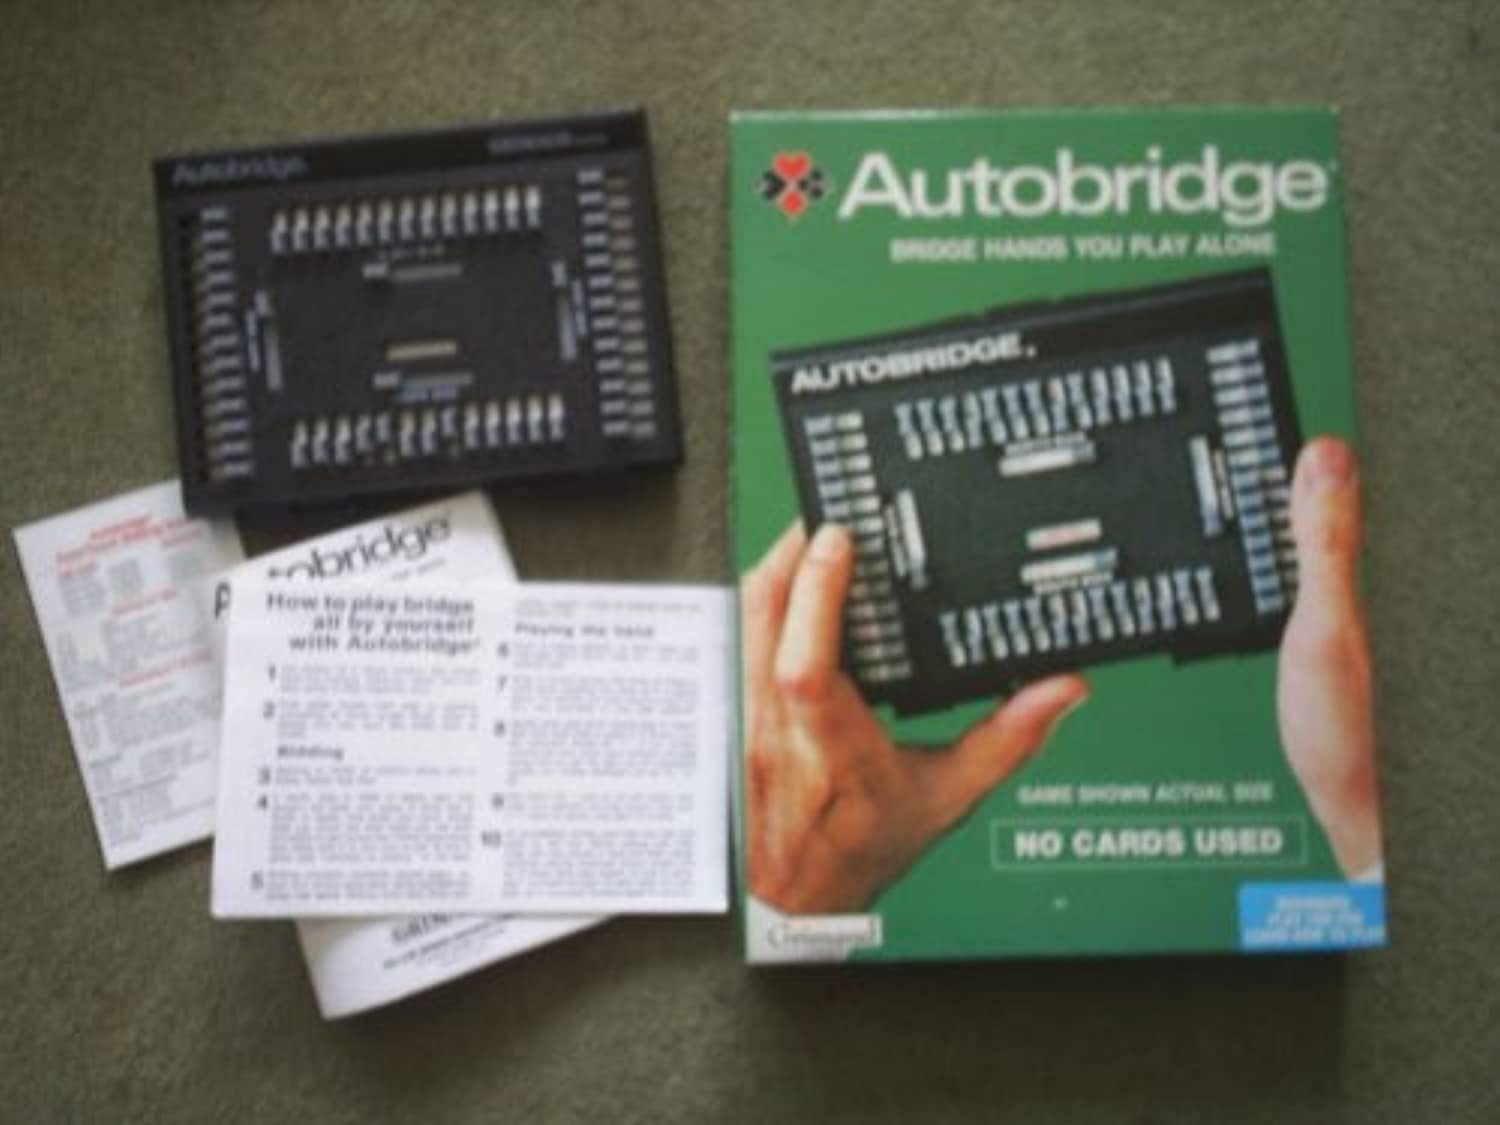 AUTOBRIDGE by GRIMAUD. VINTAGE 1980's GAME. BRIDGE HANDS YOU PLAY ALONE